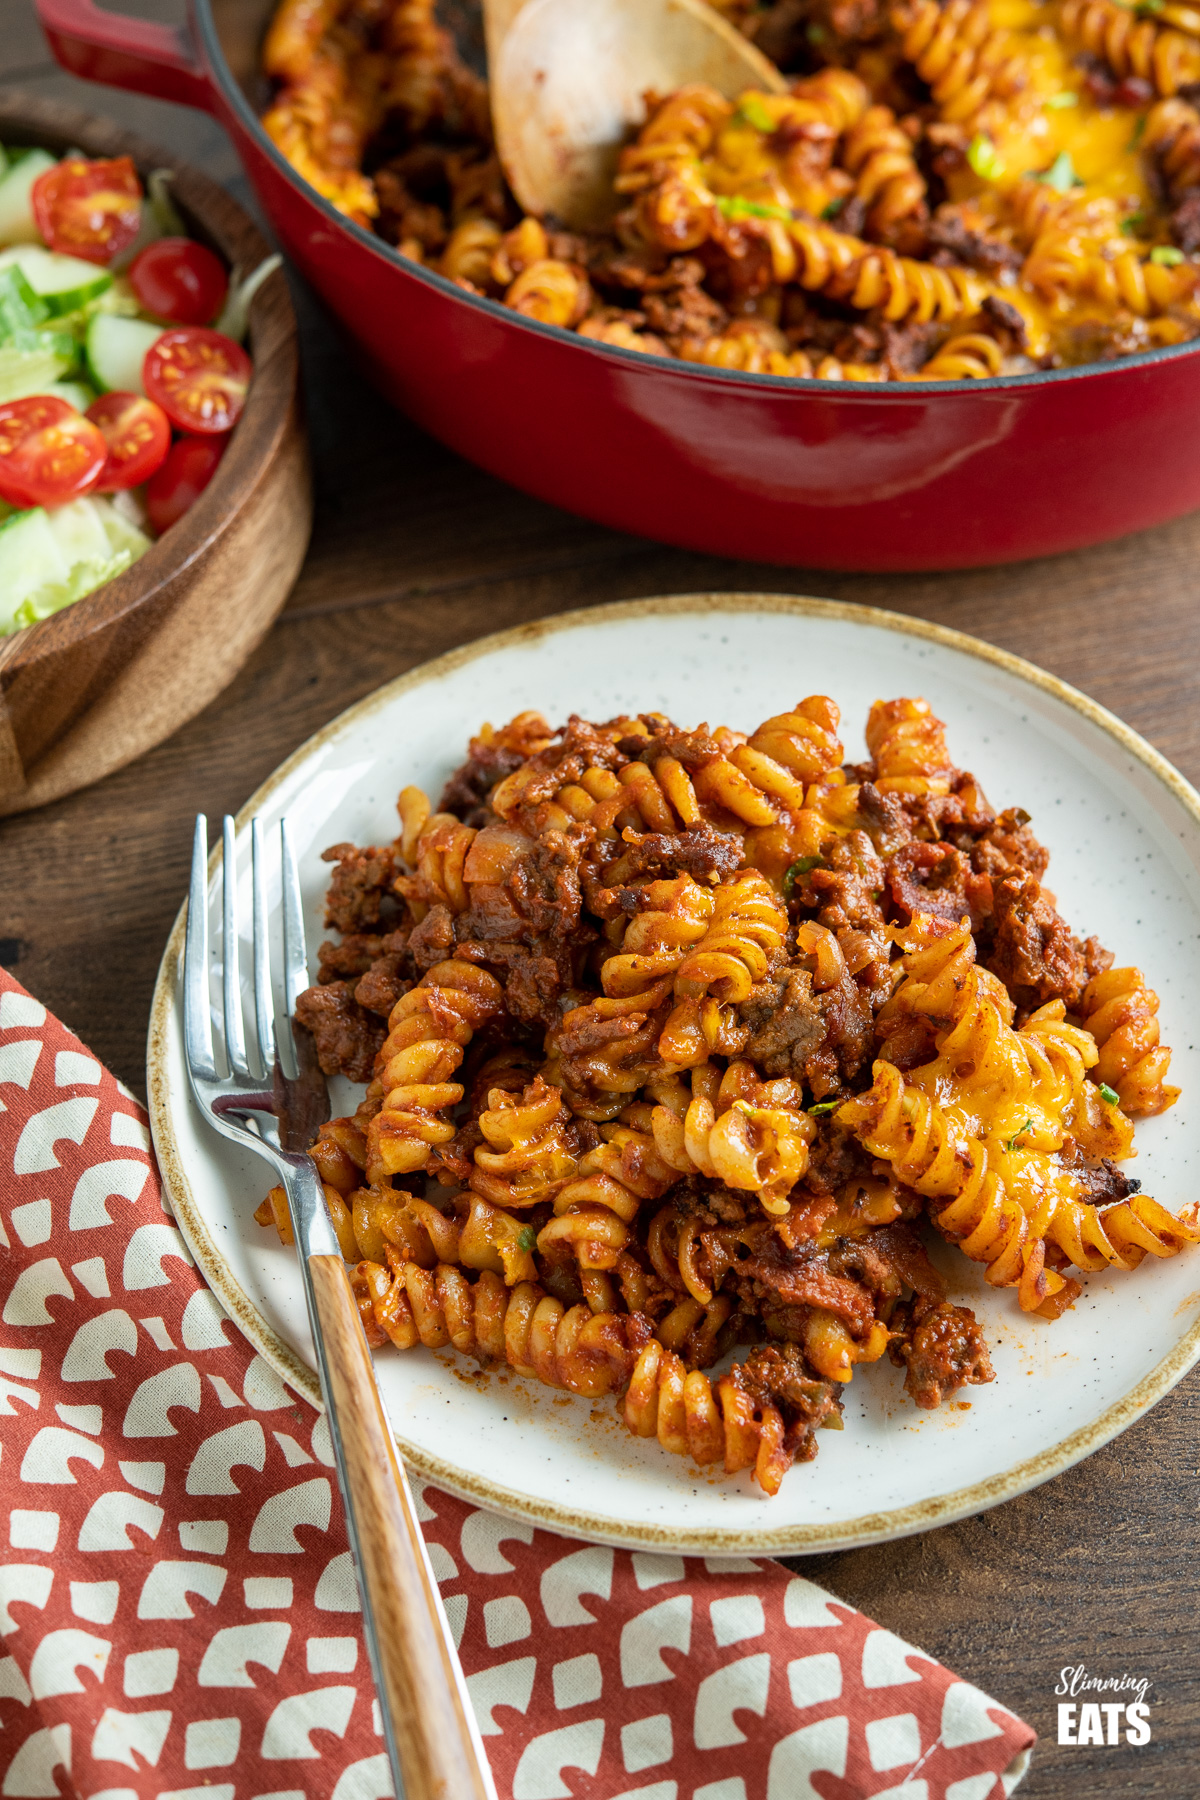 serving of BBQ Bacon Cheeseburger Pasta Bake on white plate with beige rim, fork placed to the left and a wooden bowl of salad and cast iron skillet filled with the pasta in the background